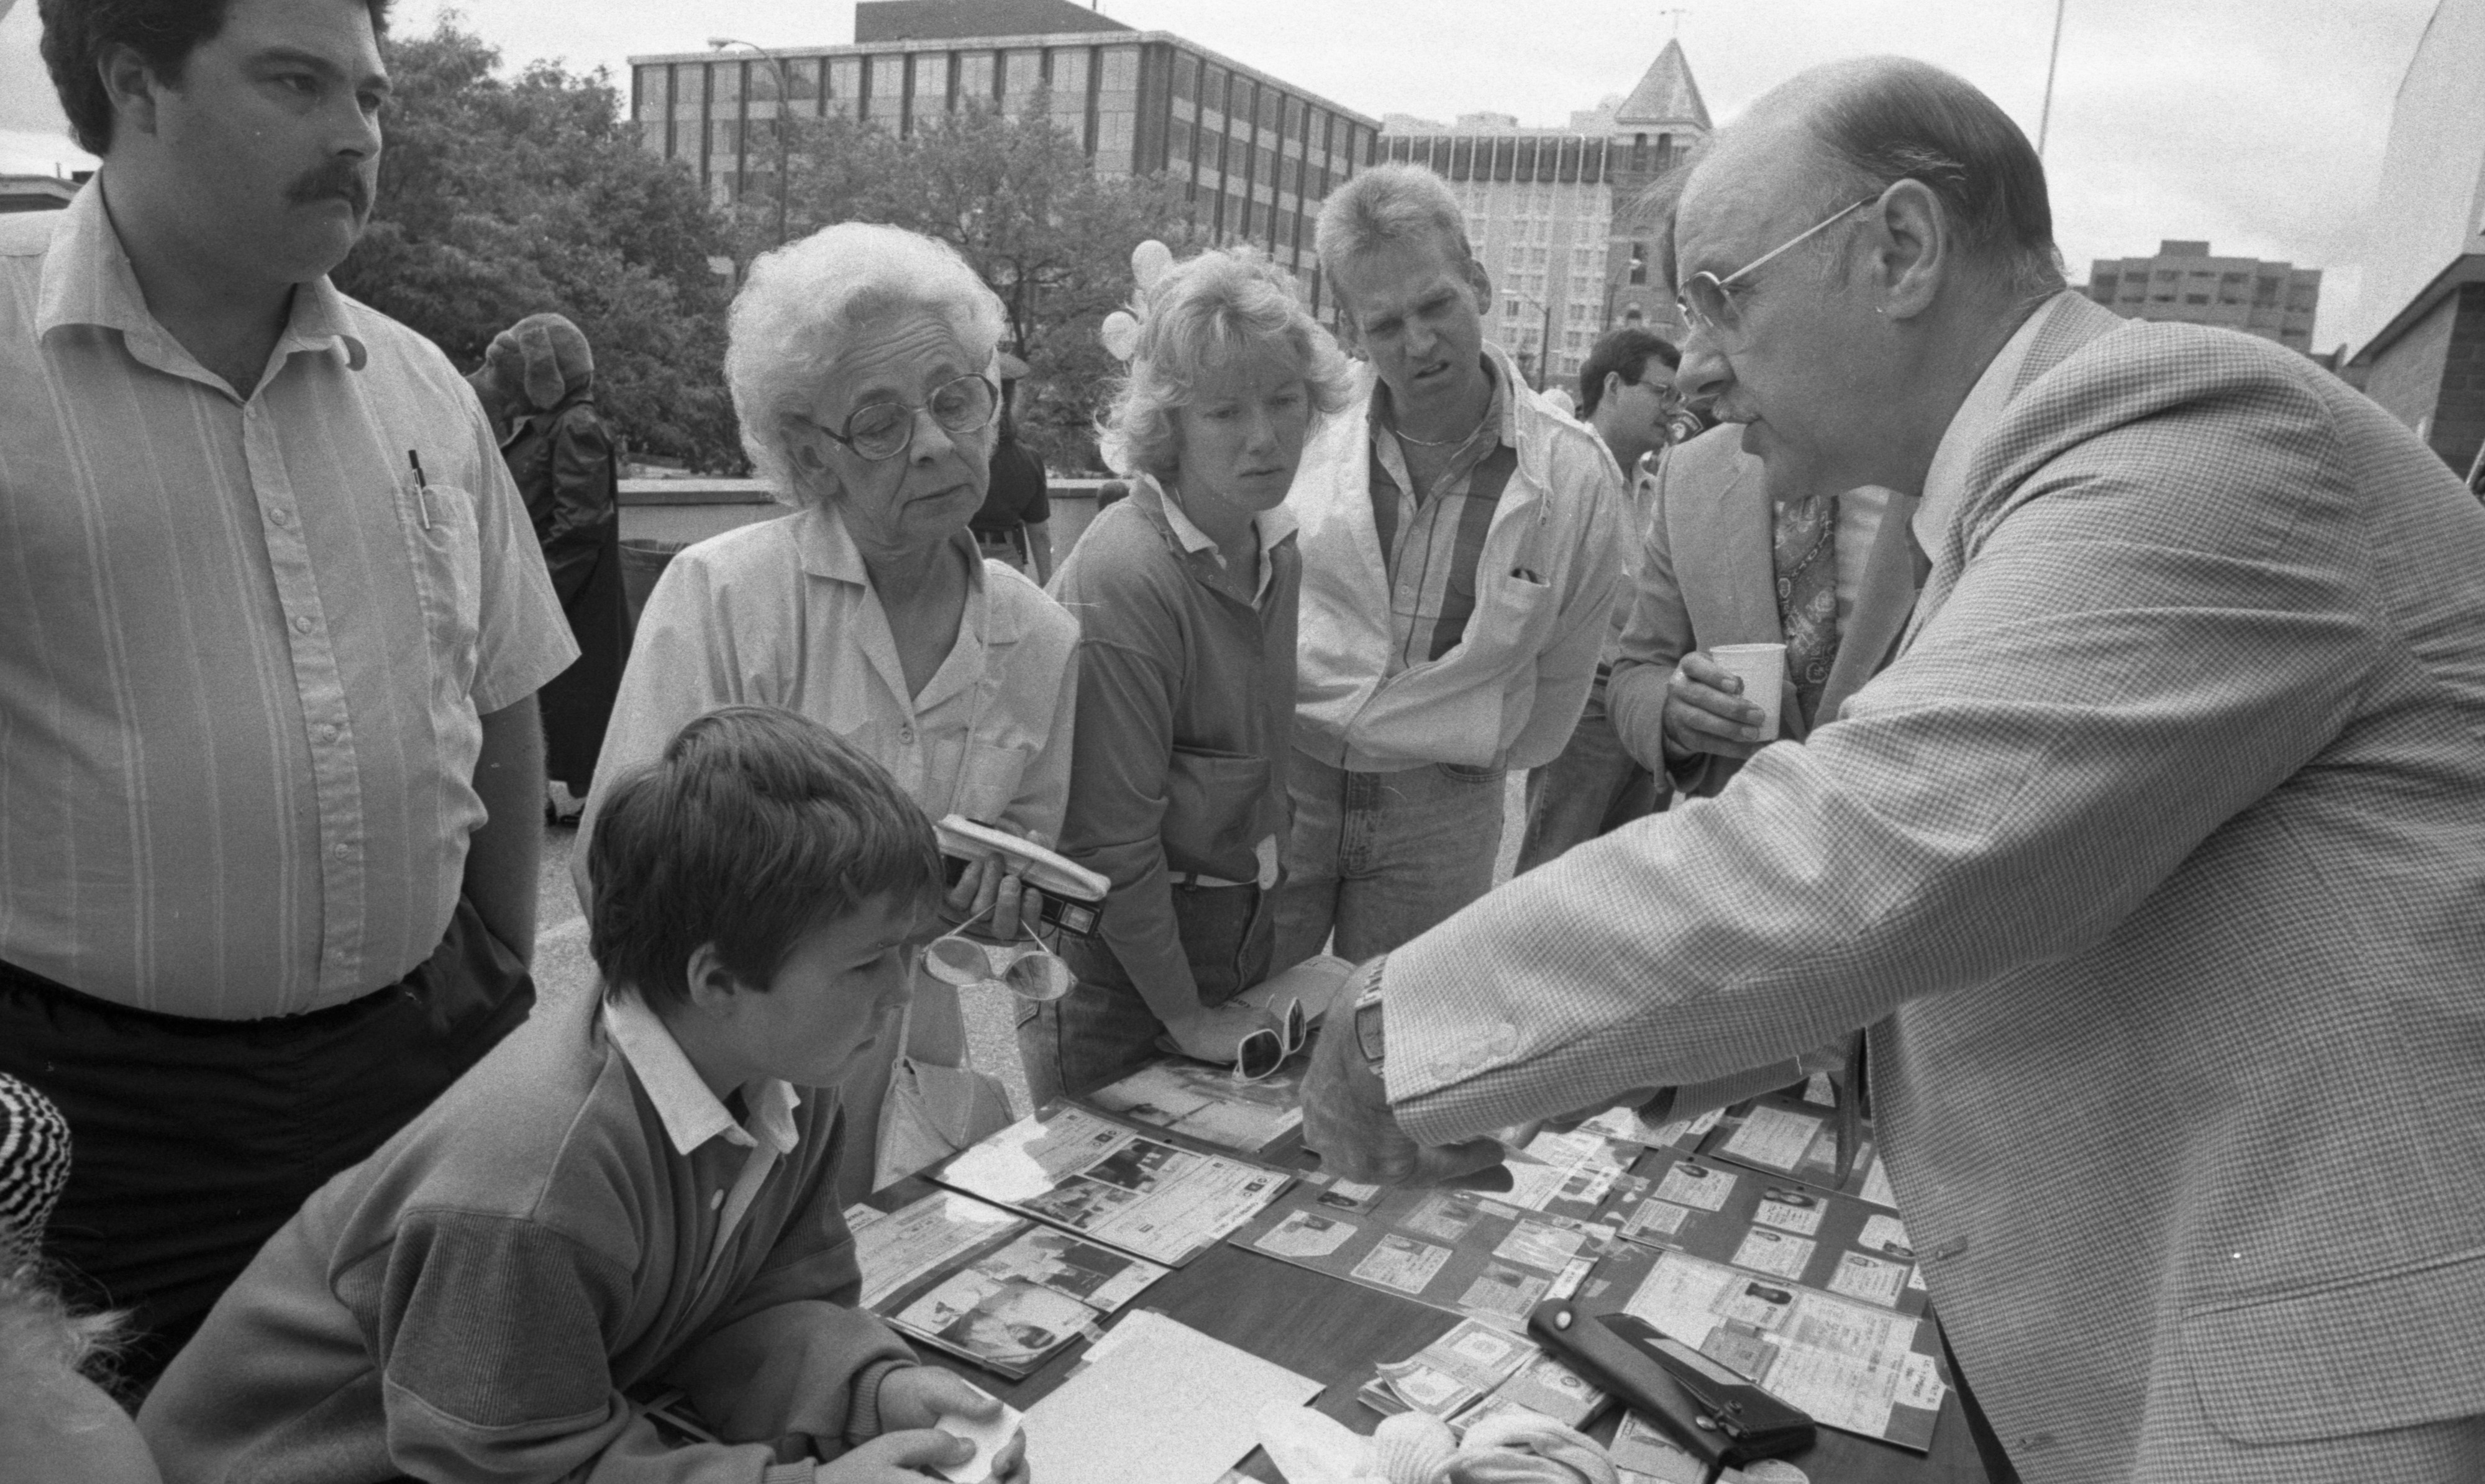 Detective Exhibits Counterfeiting Evidence at Ann Arbor Police Department Open House, September 1989 image